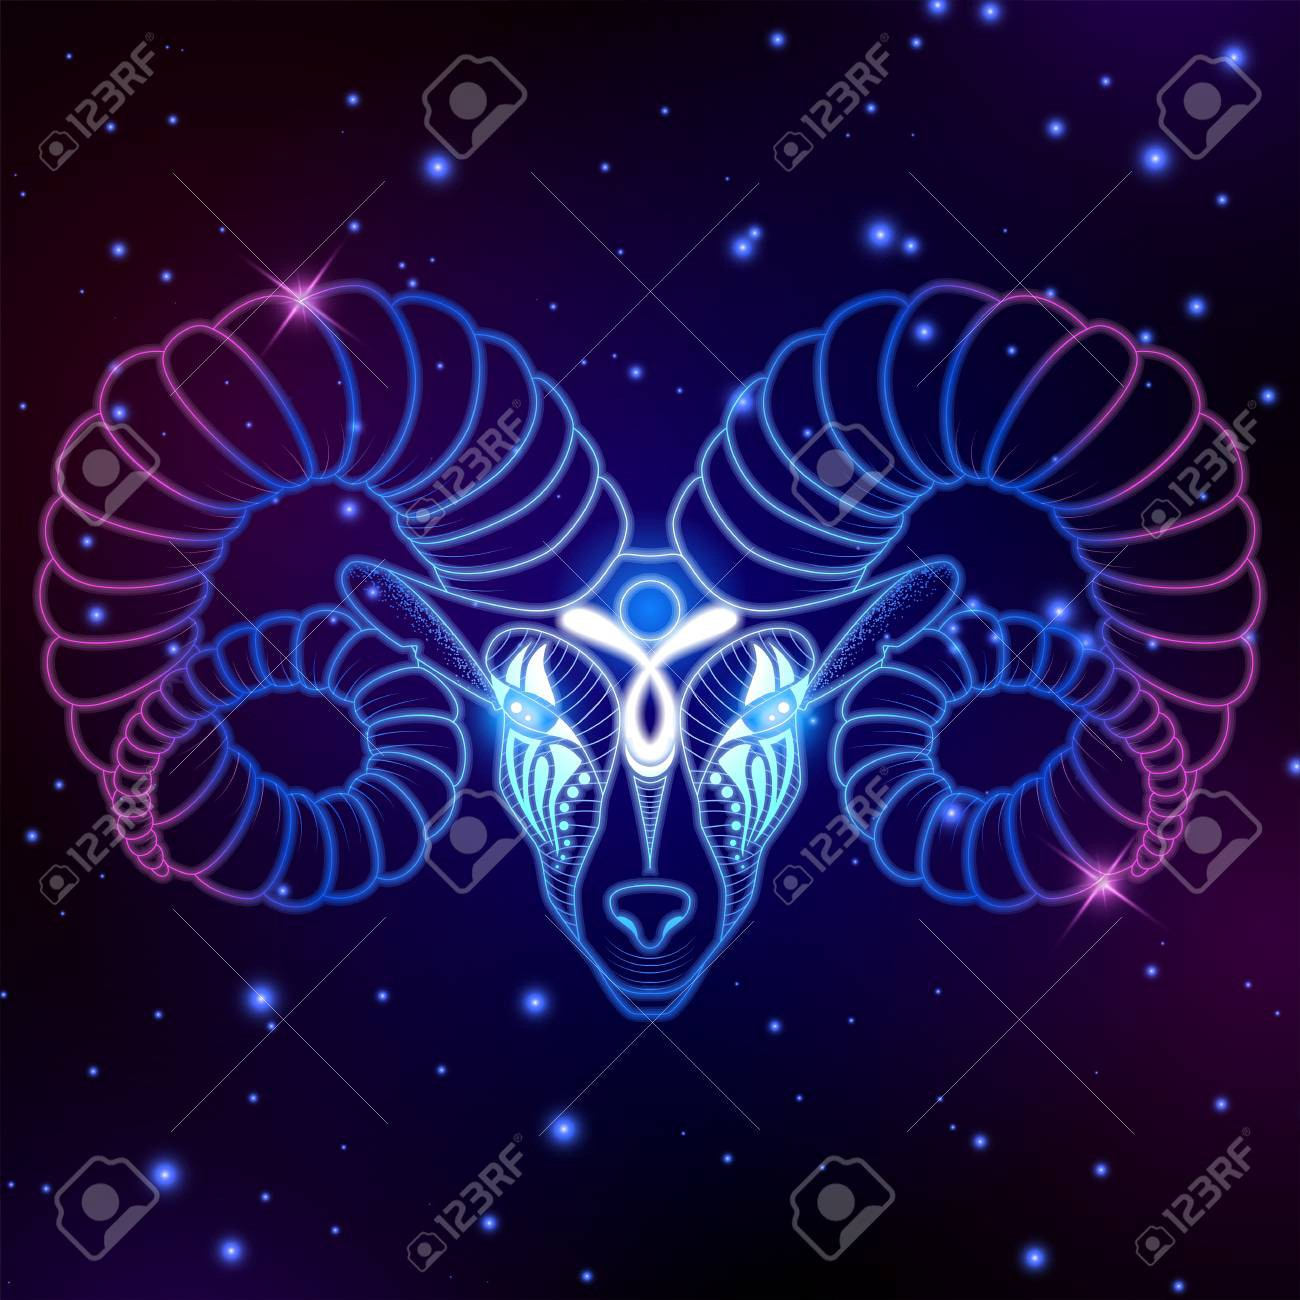 Aries astrological sign characteristics